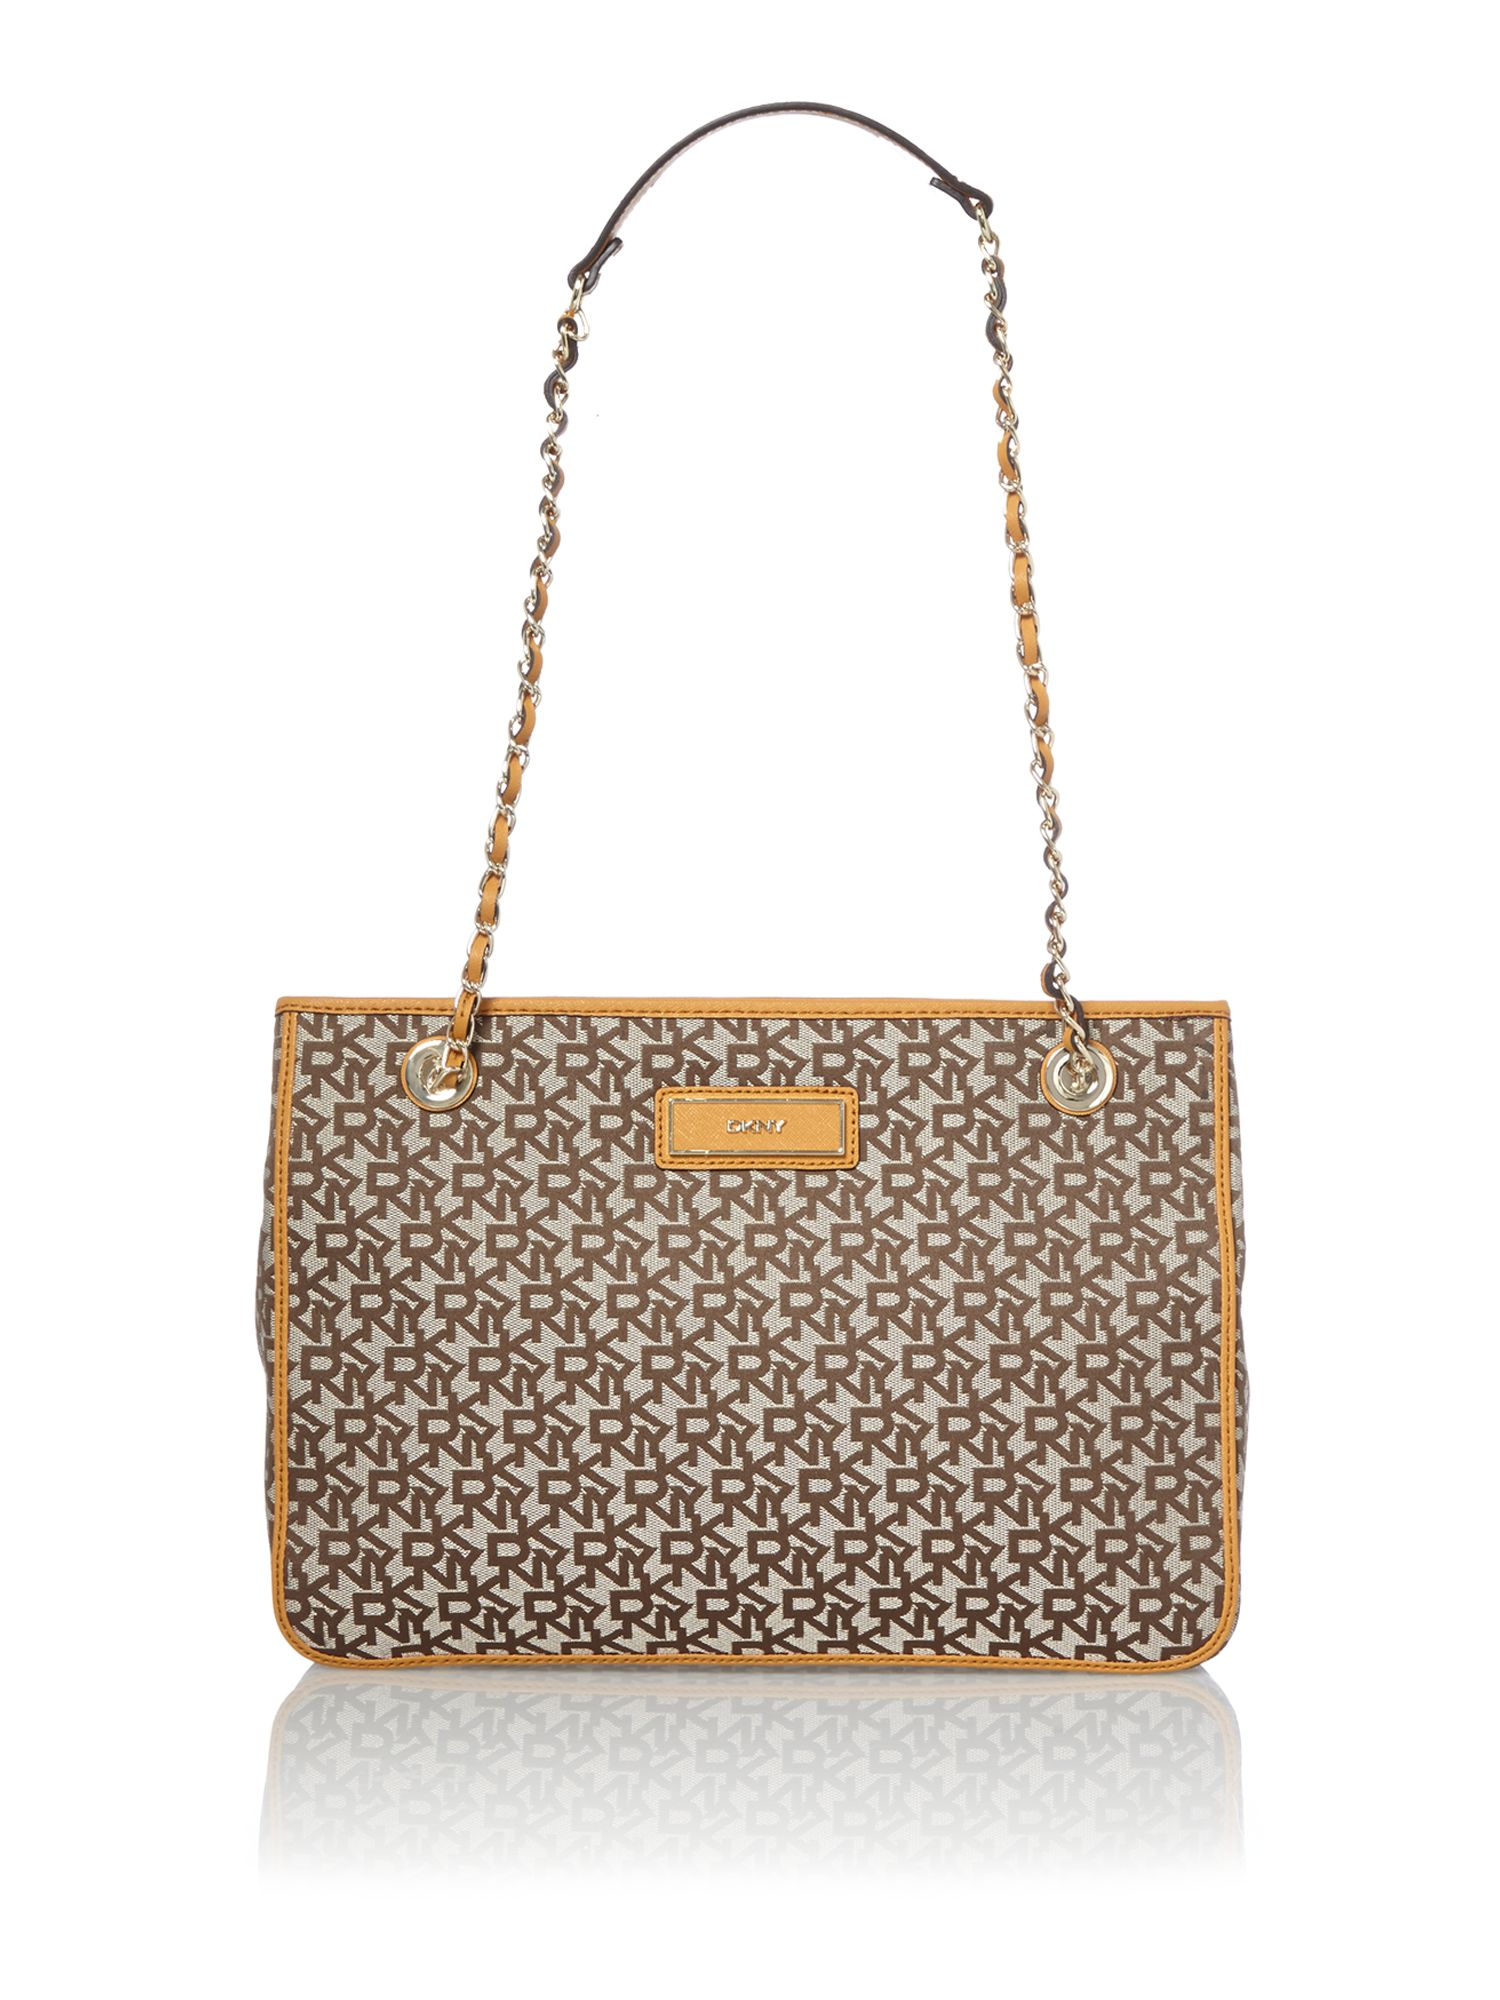 Saffiano tan chain tote bag